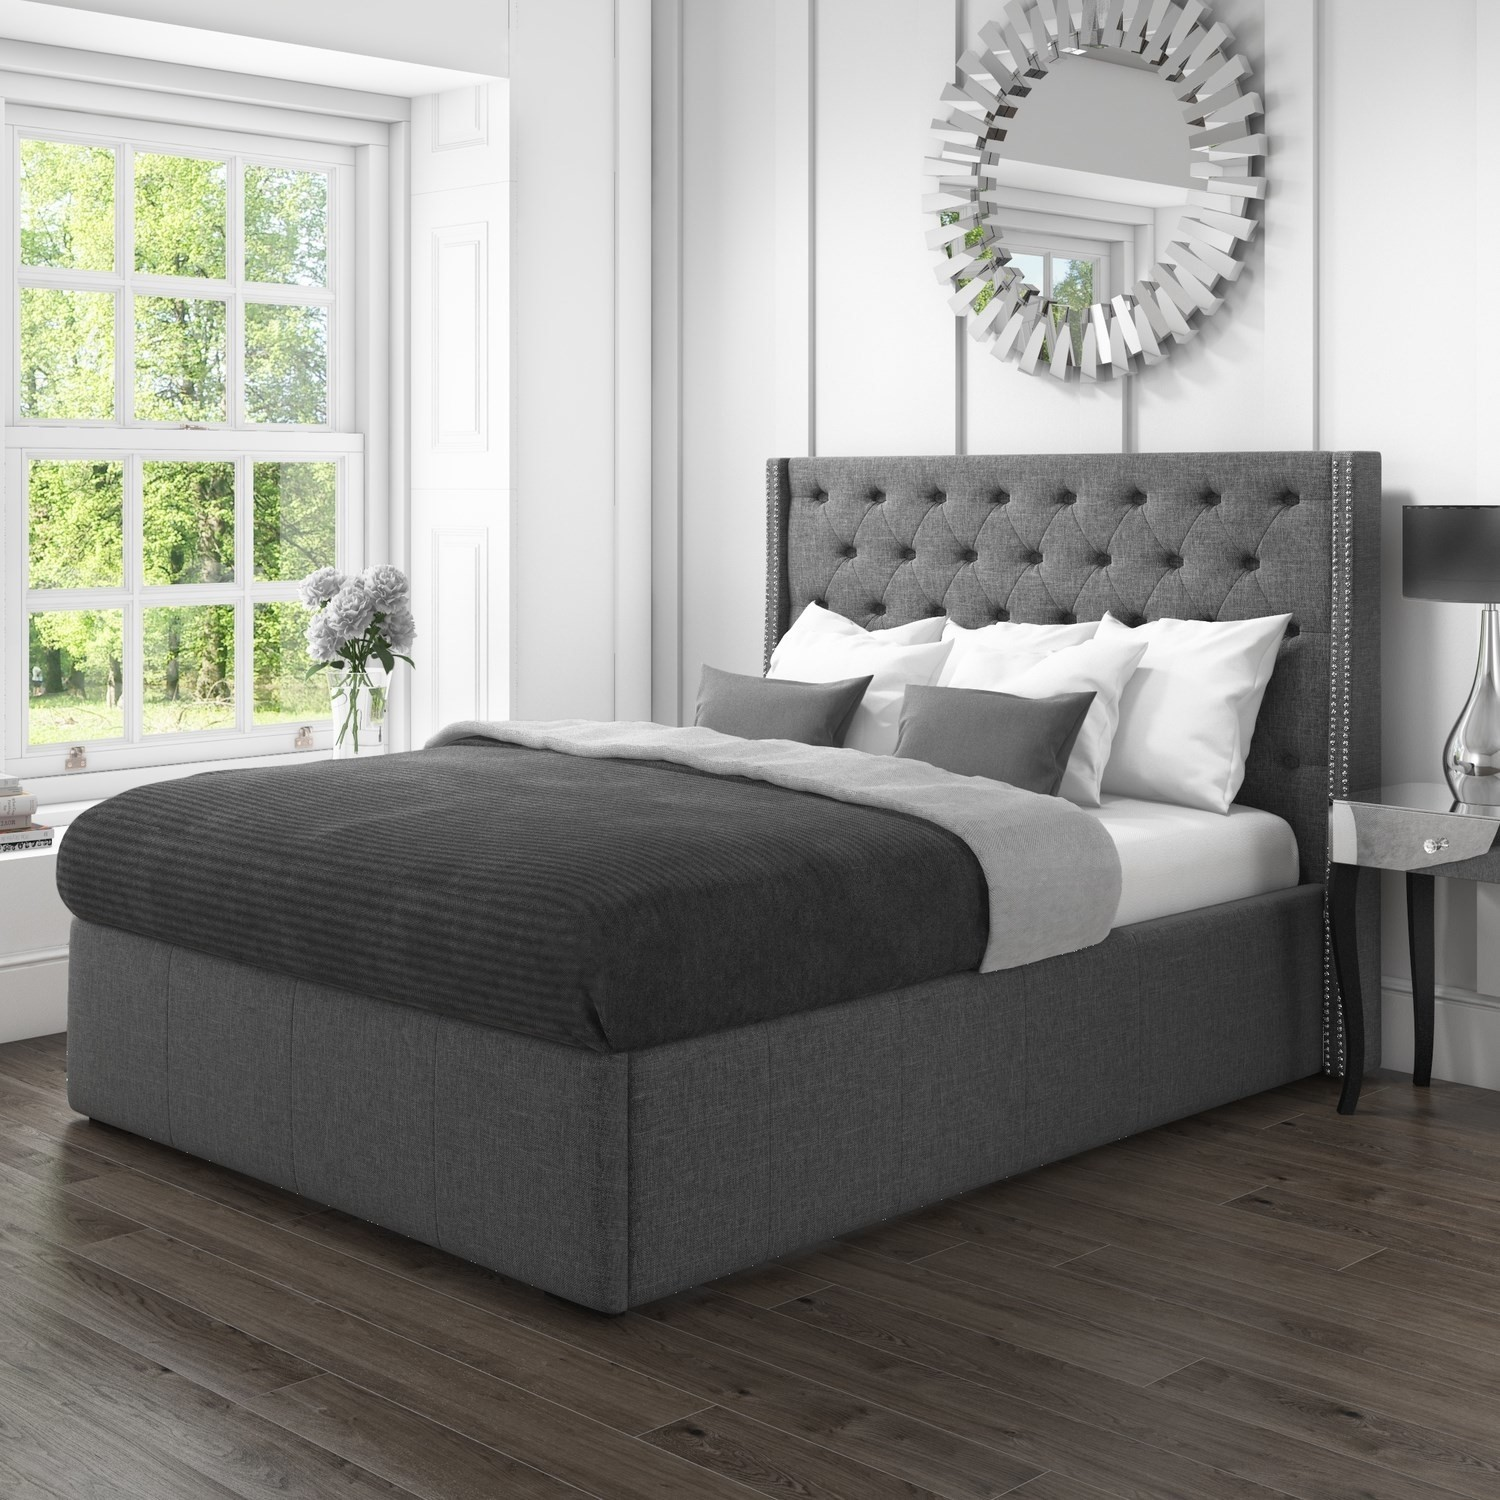 safina kingsize wing back ottoman bed with stud detailing in woven charcoal grey